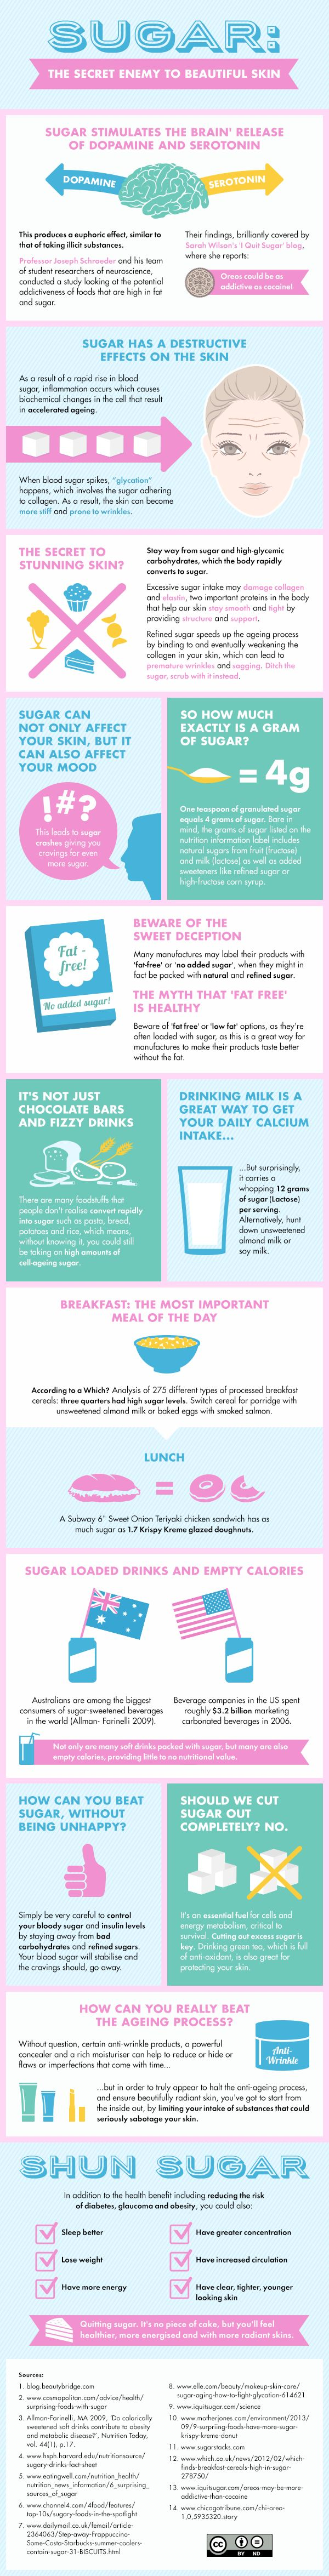 Skincare ........ An infographic comprehensively exploring the damaging effects of sugar on the skin. You'll be surprised and shocked of the damaging effects that even everyday items can have on the skin......Kur spa nyc <3